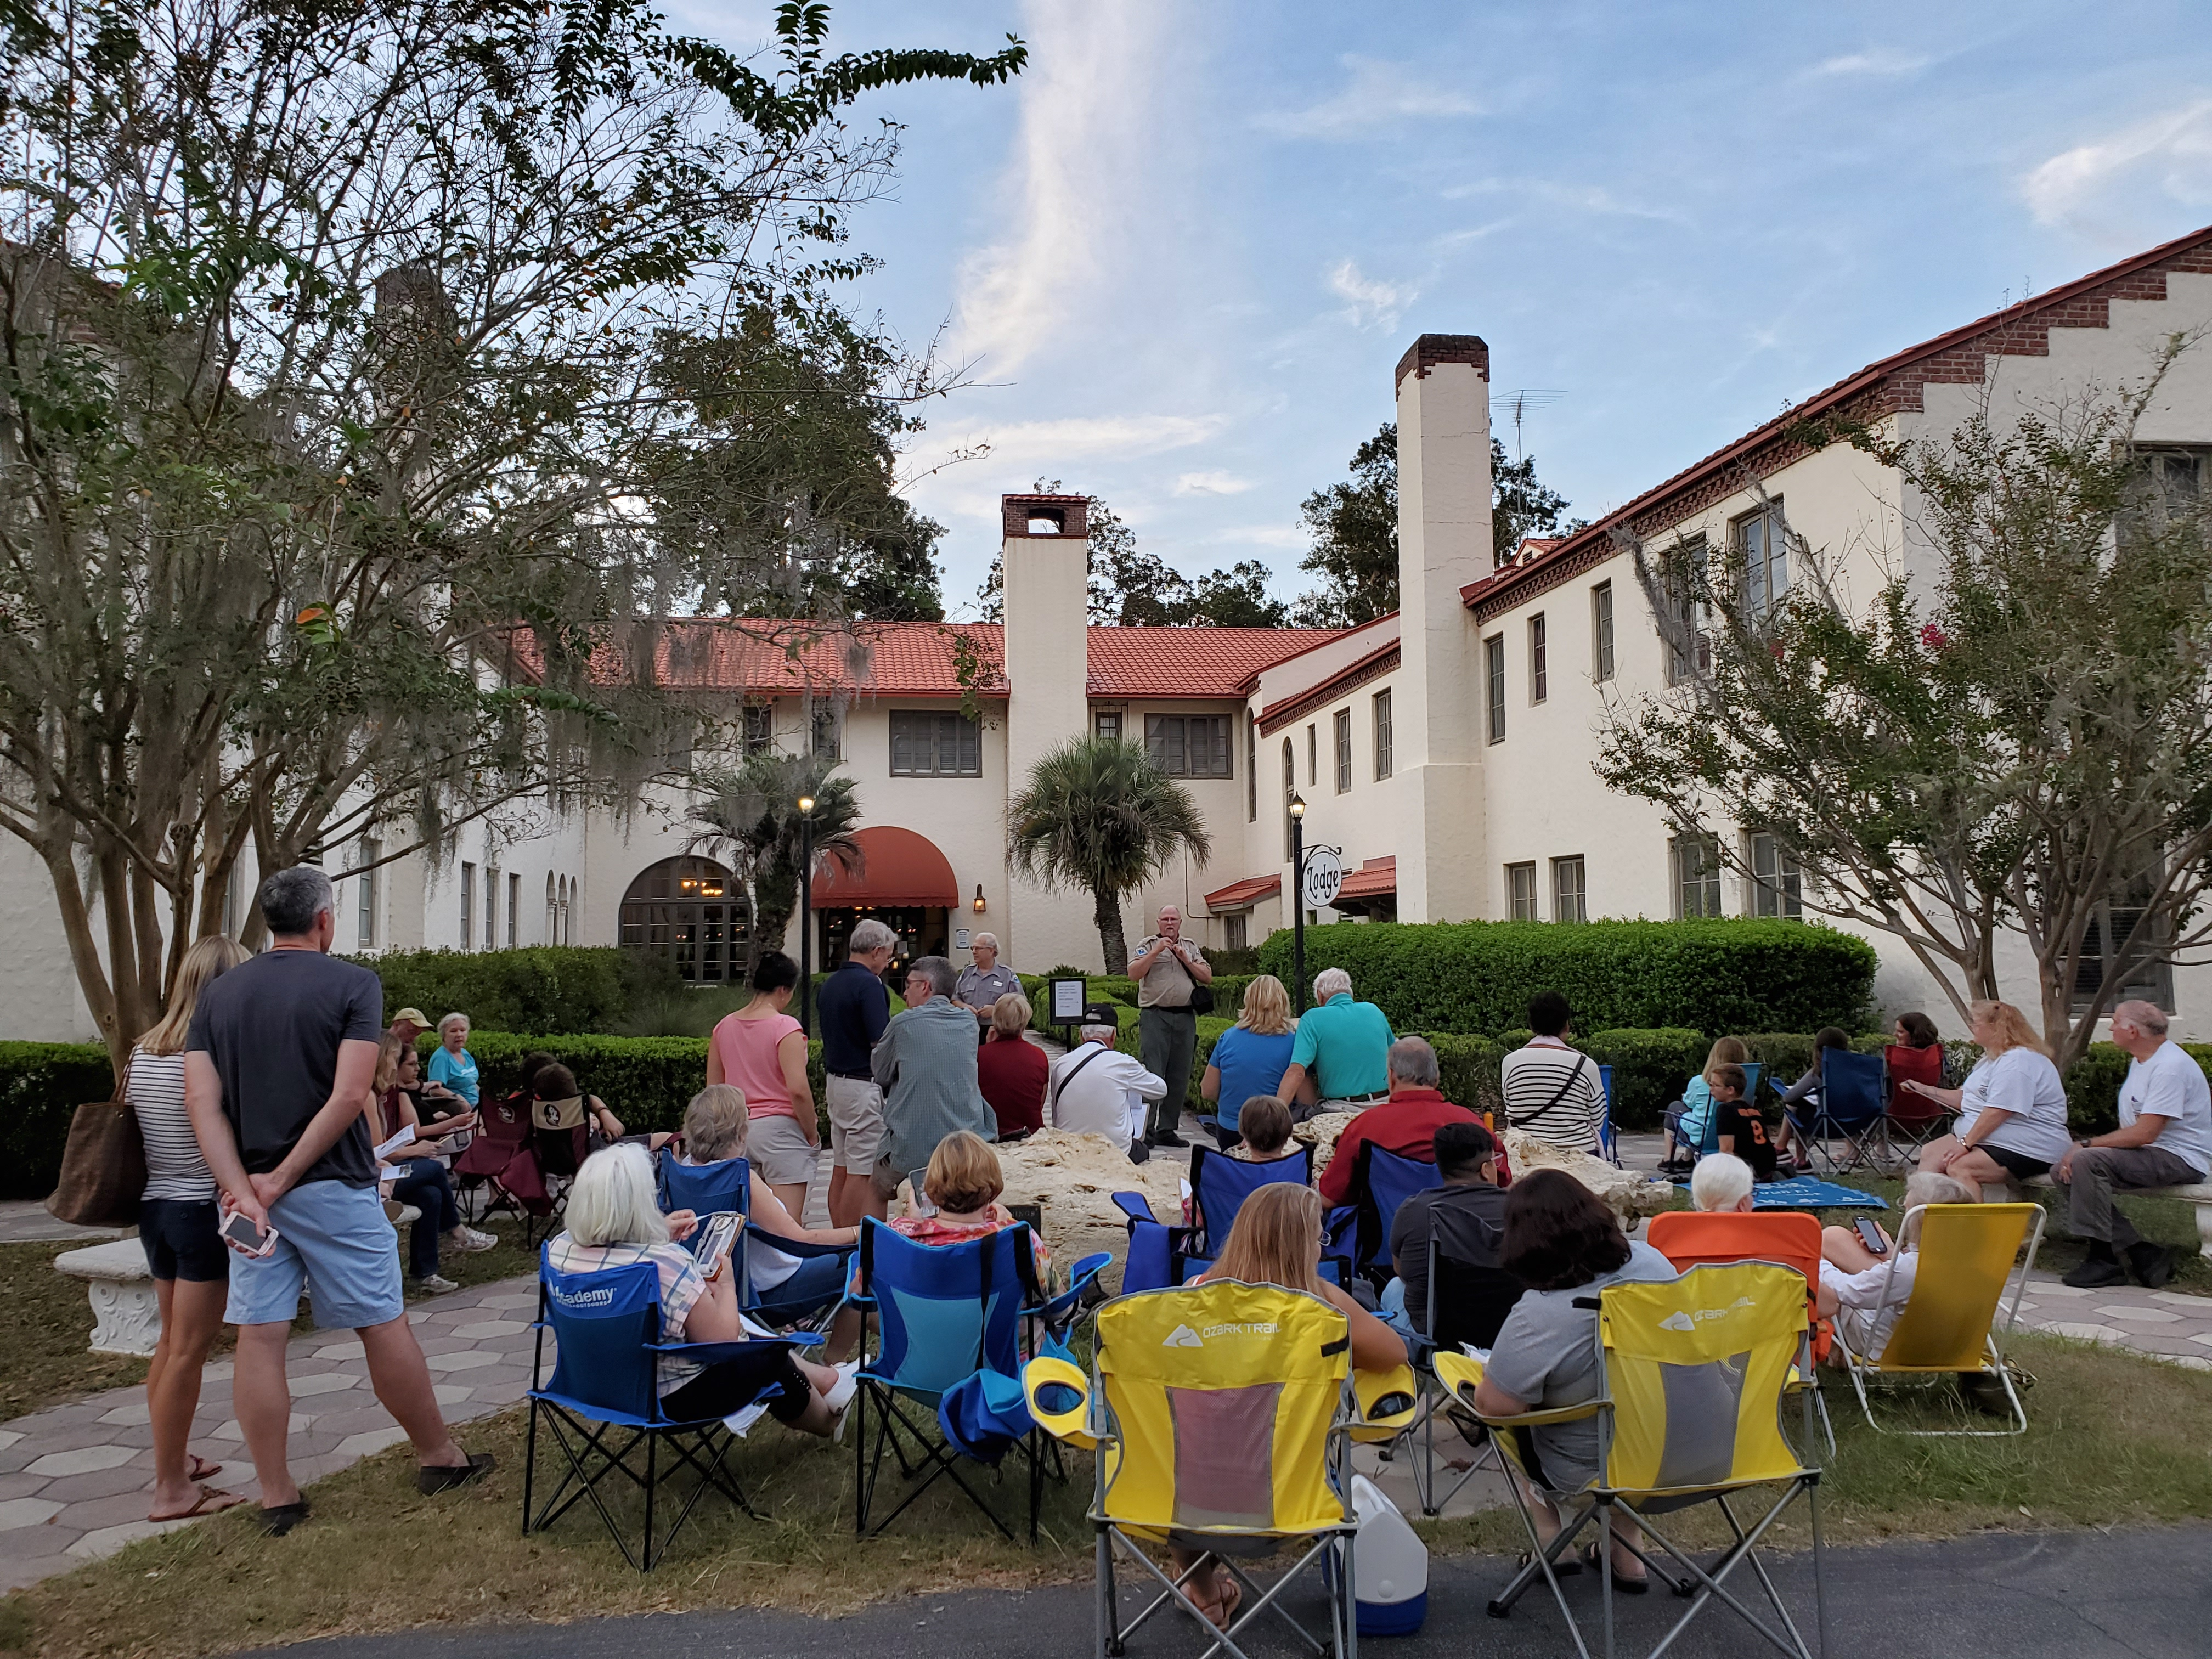 Visitors gather at the Lodge to learn about Chimney Swifts.